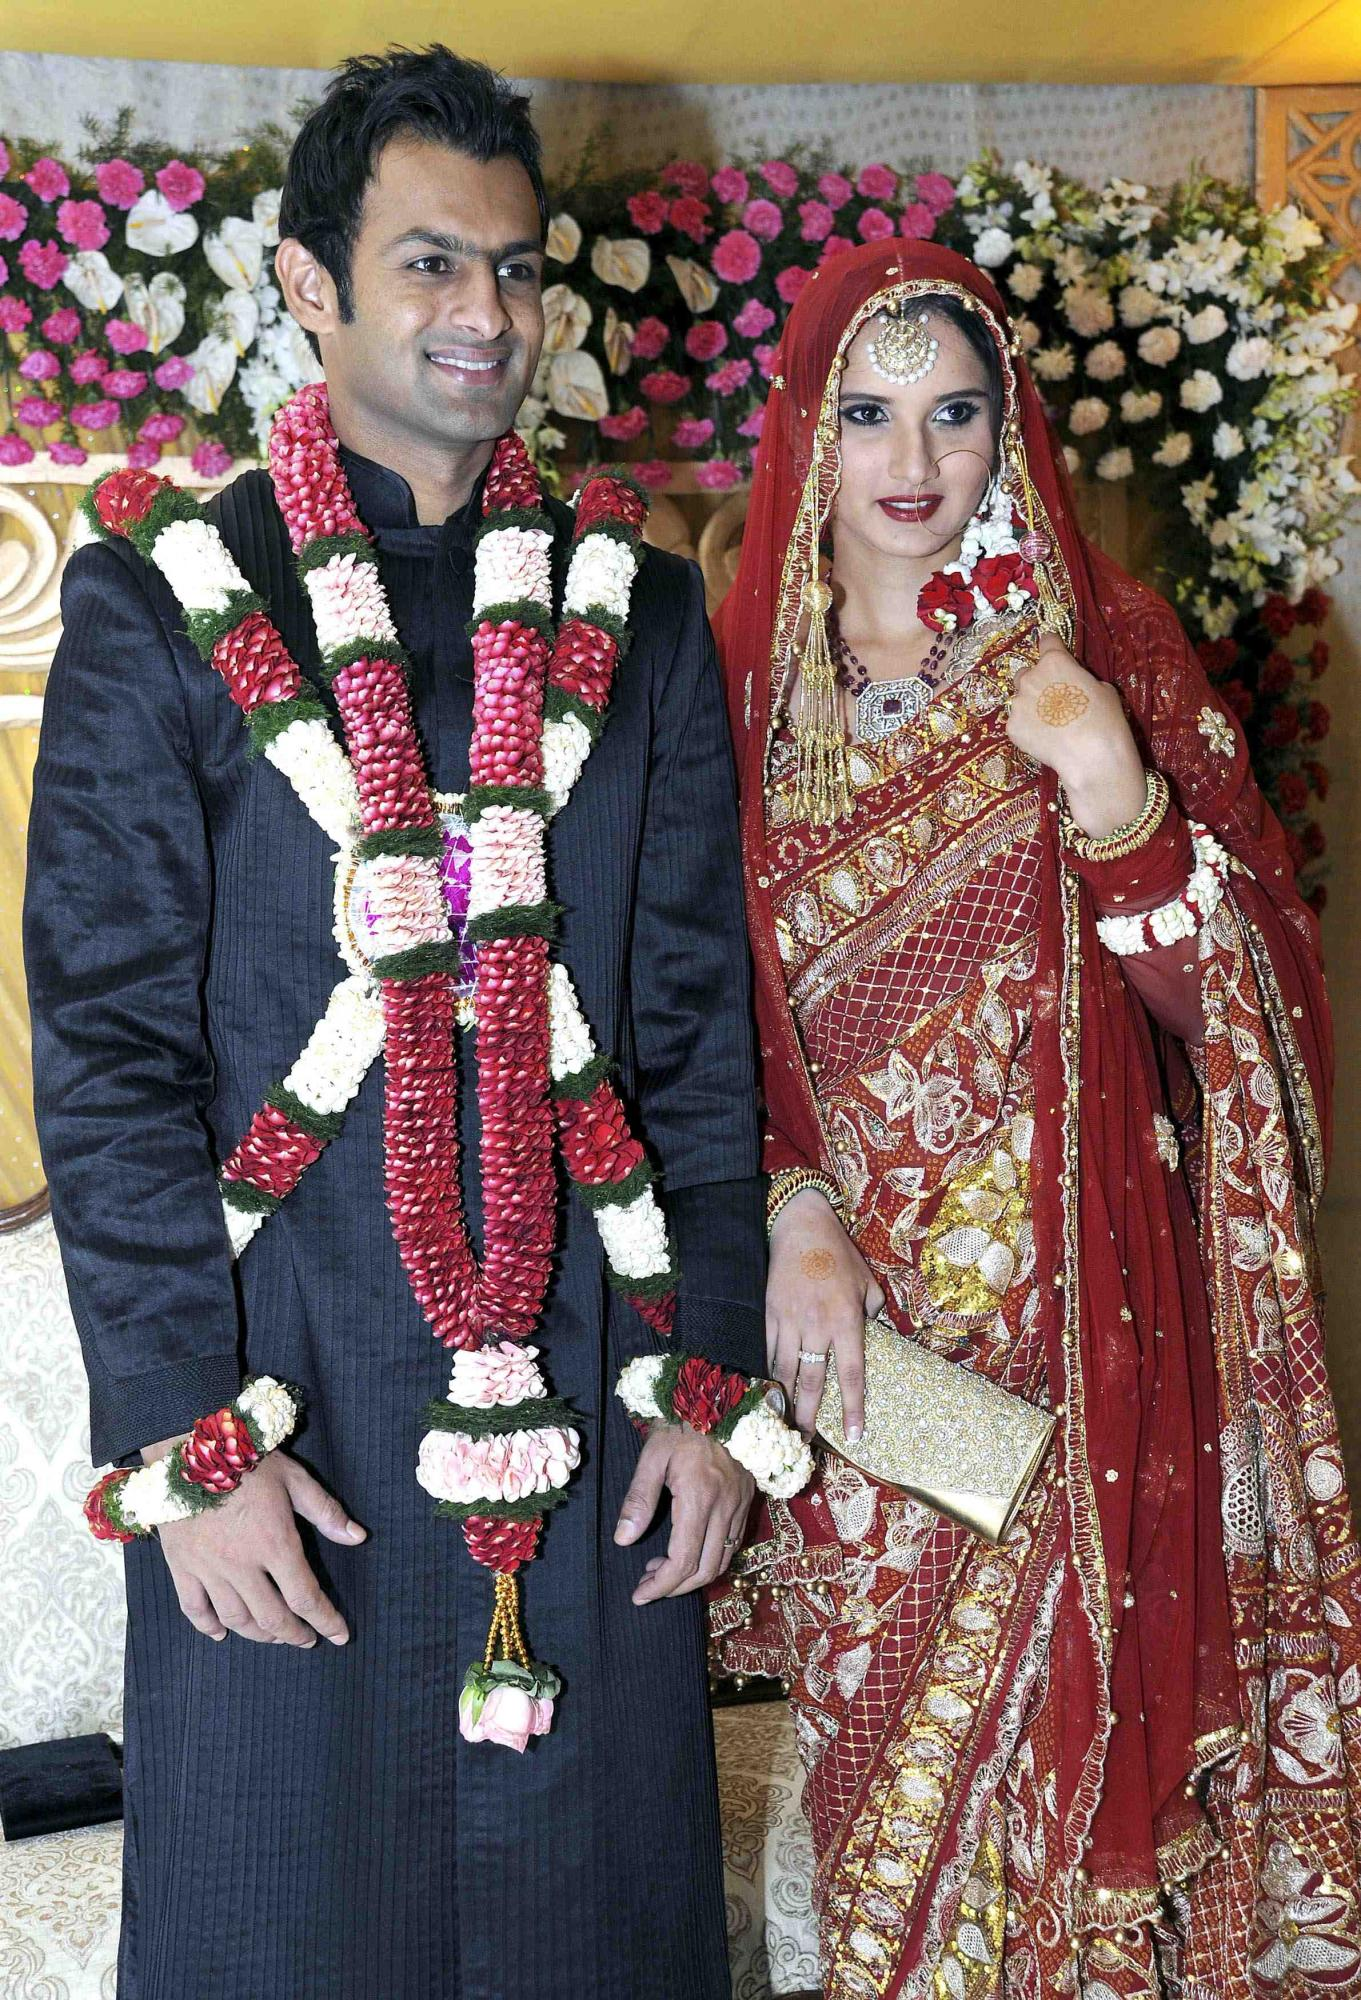 India tennis babe marries Pakistani cricketer